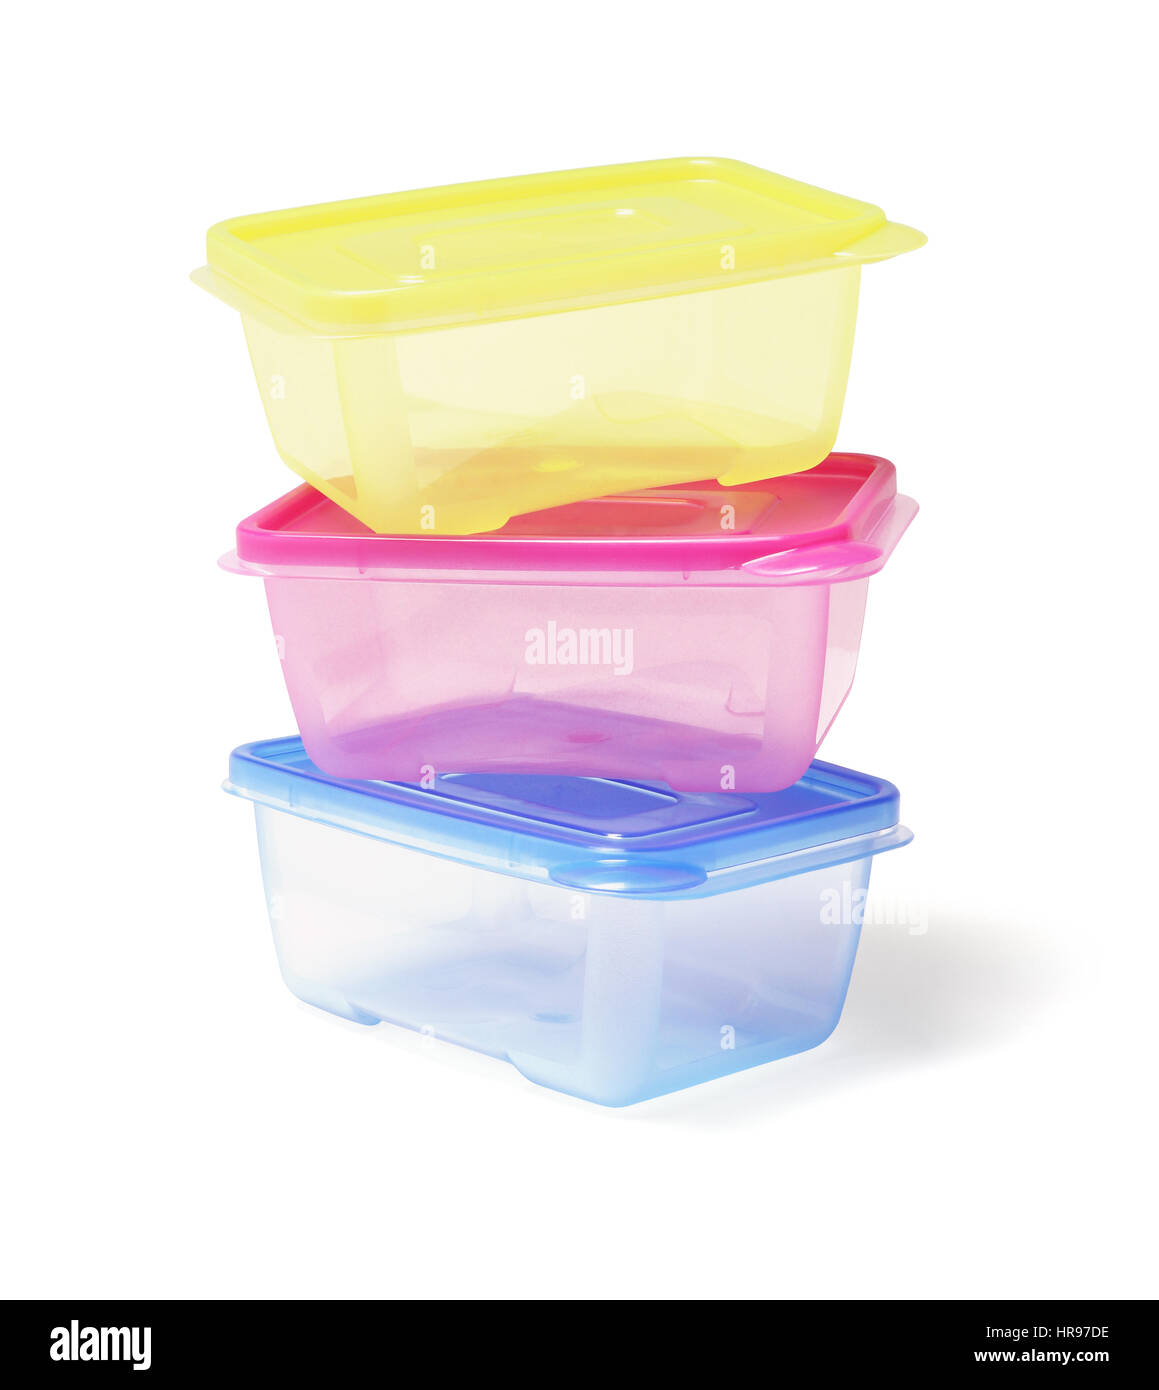 Stack Of Colourful Plastic Containers On White Background   Stock Image